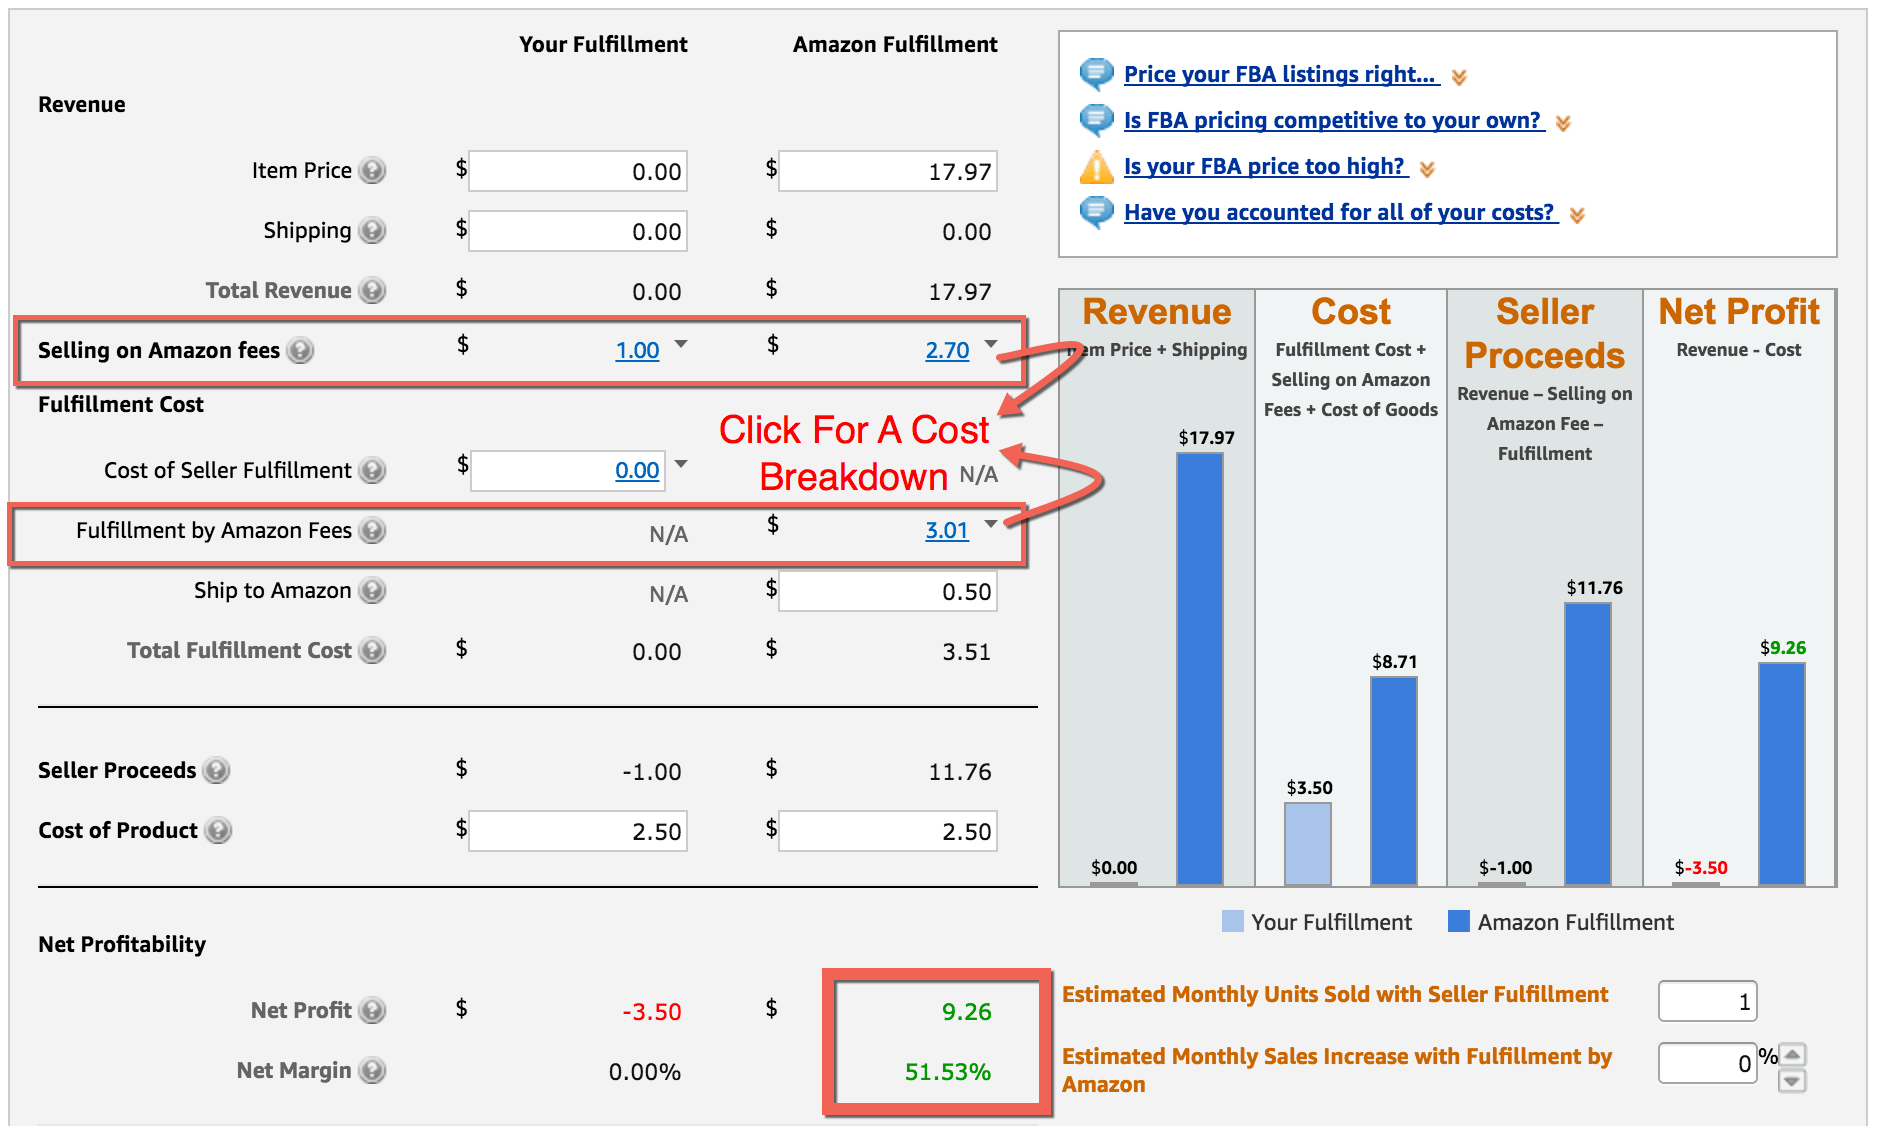 Amazon Fba Excel Spreadsheet For Fba Calculator: Free Tool To Calculate Amazon Fees, Profit  Revenue